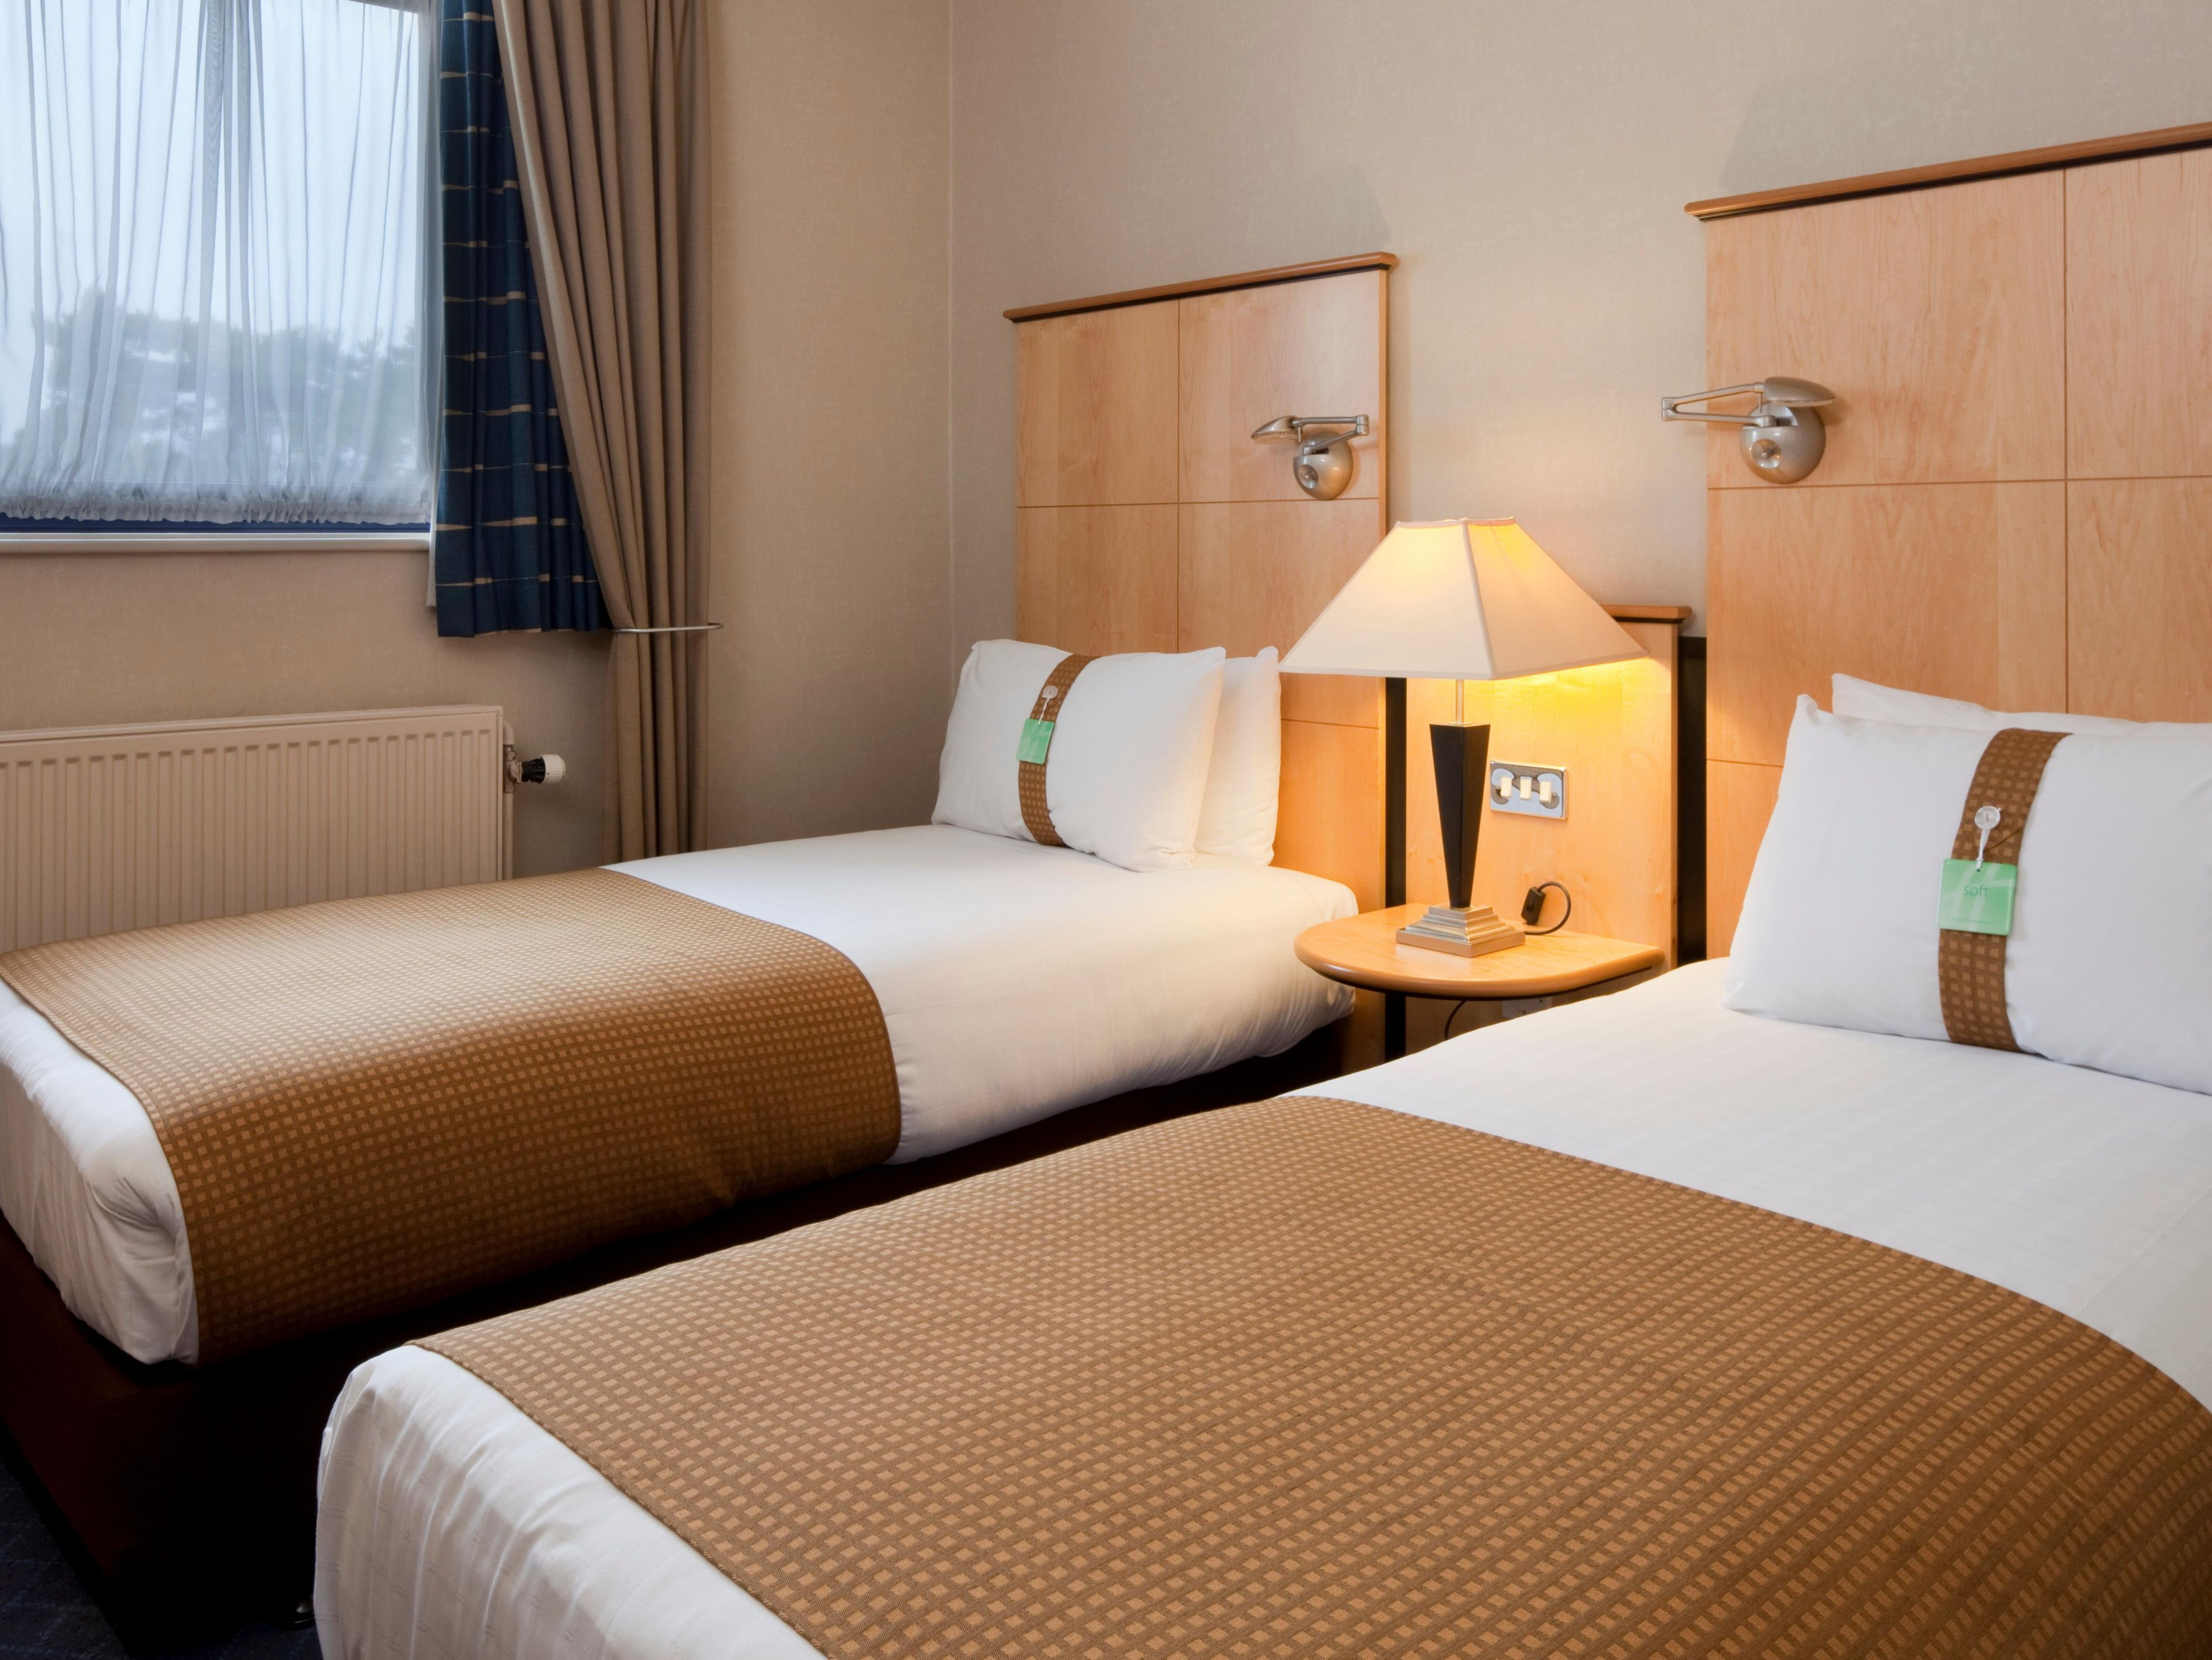 Tranquil rooms at the Holiday Inn Luton South